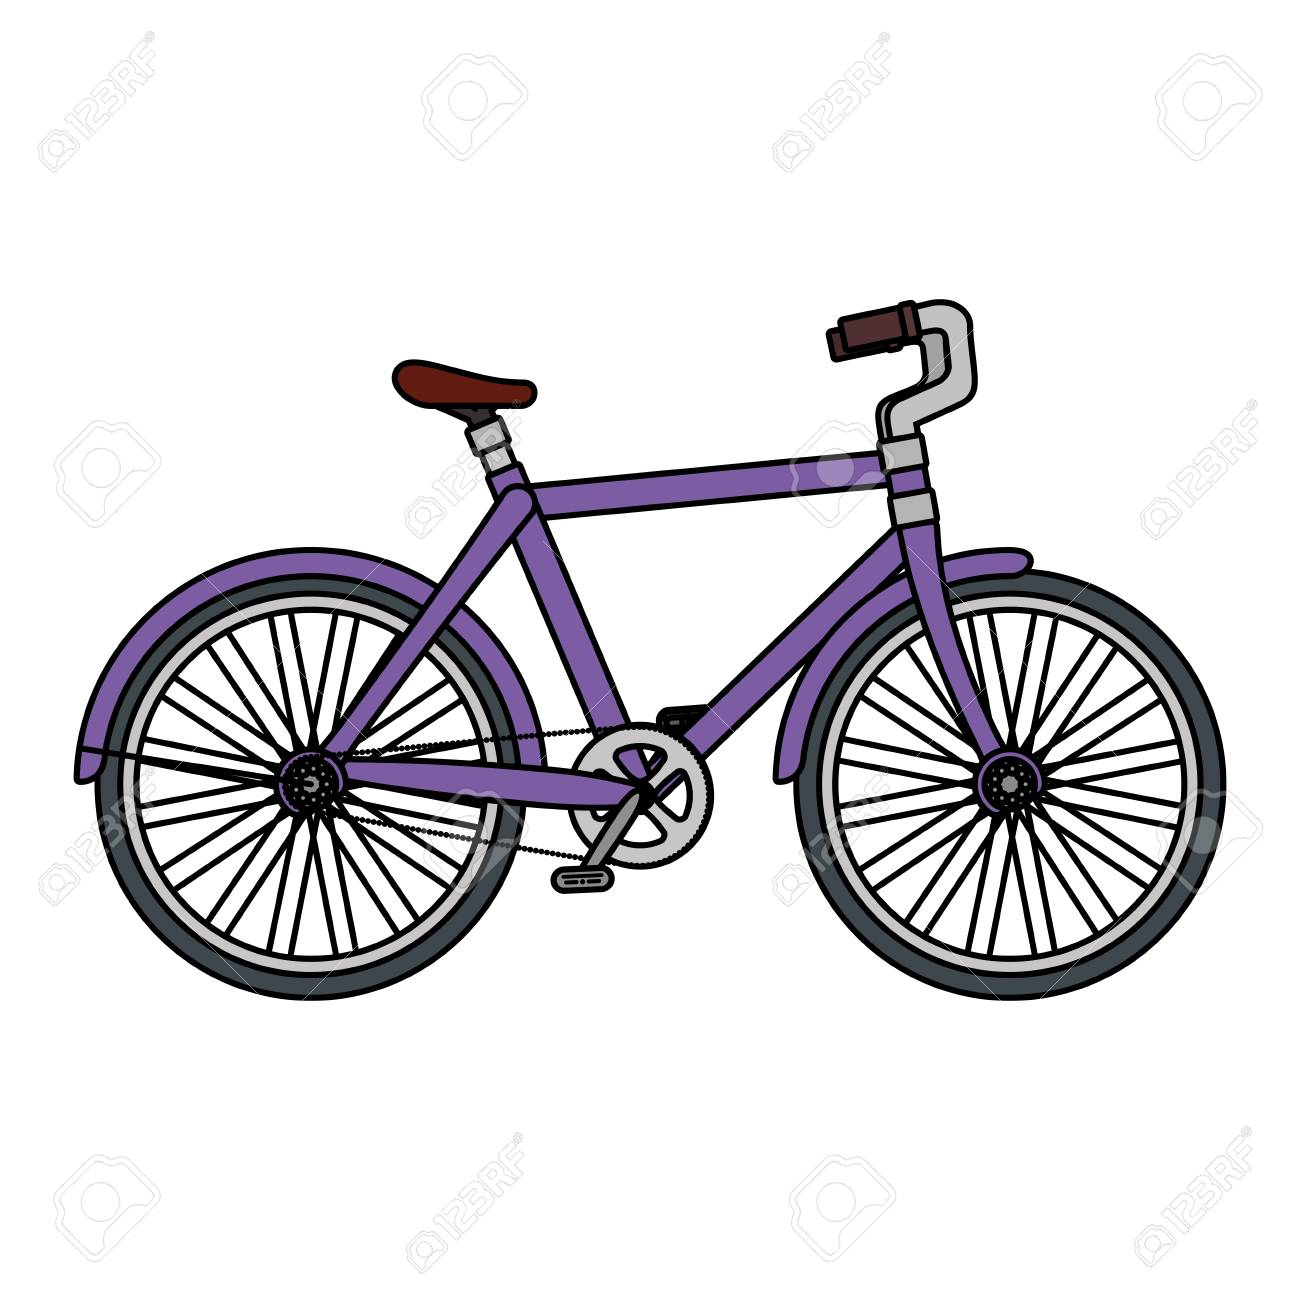 racing bicycle isolated icon vector illustration design - 126775144